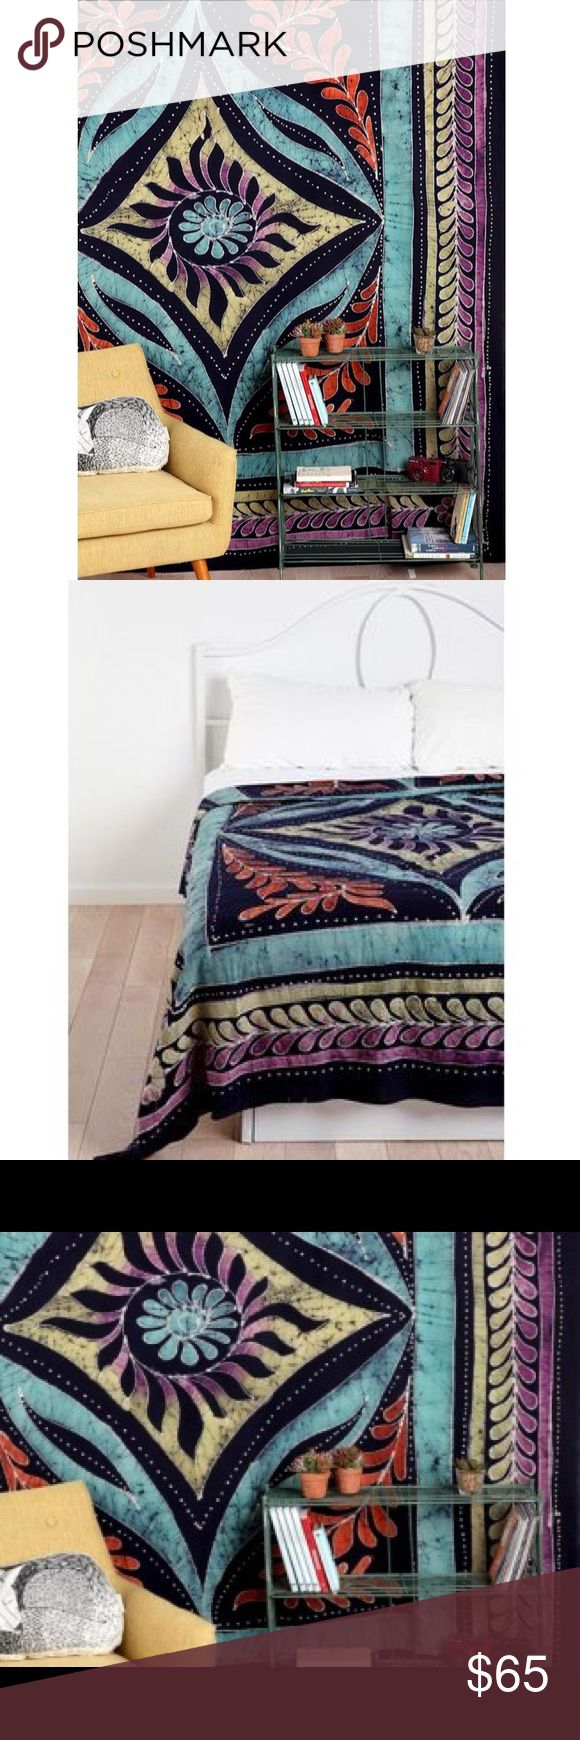 "Urban Outfitters Tapestry This tapestry has so many applications: bed cover, curtain, or just a beautiful piece of art to be admired on the wall. Dimensions: 84""L - 100""H. Urban Outfitters Other"